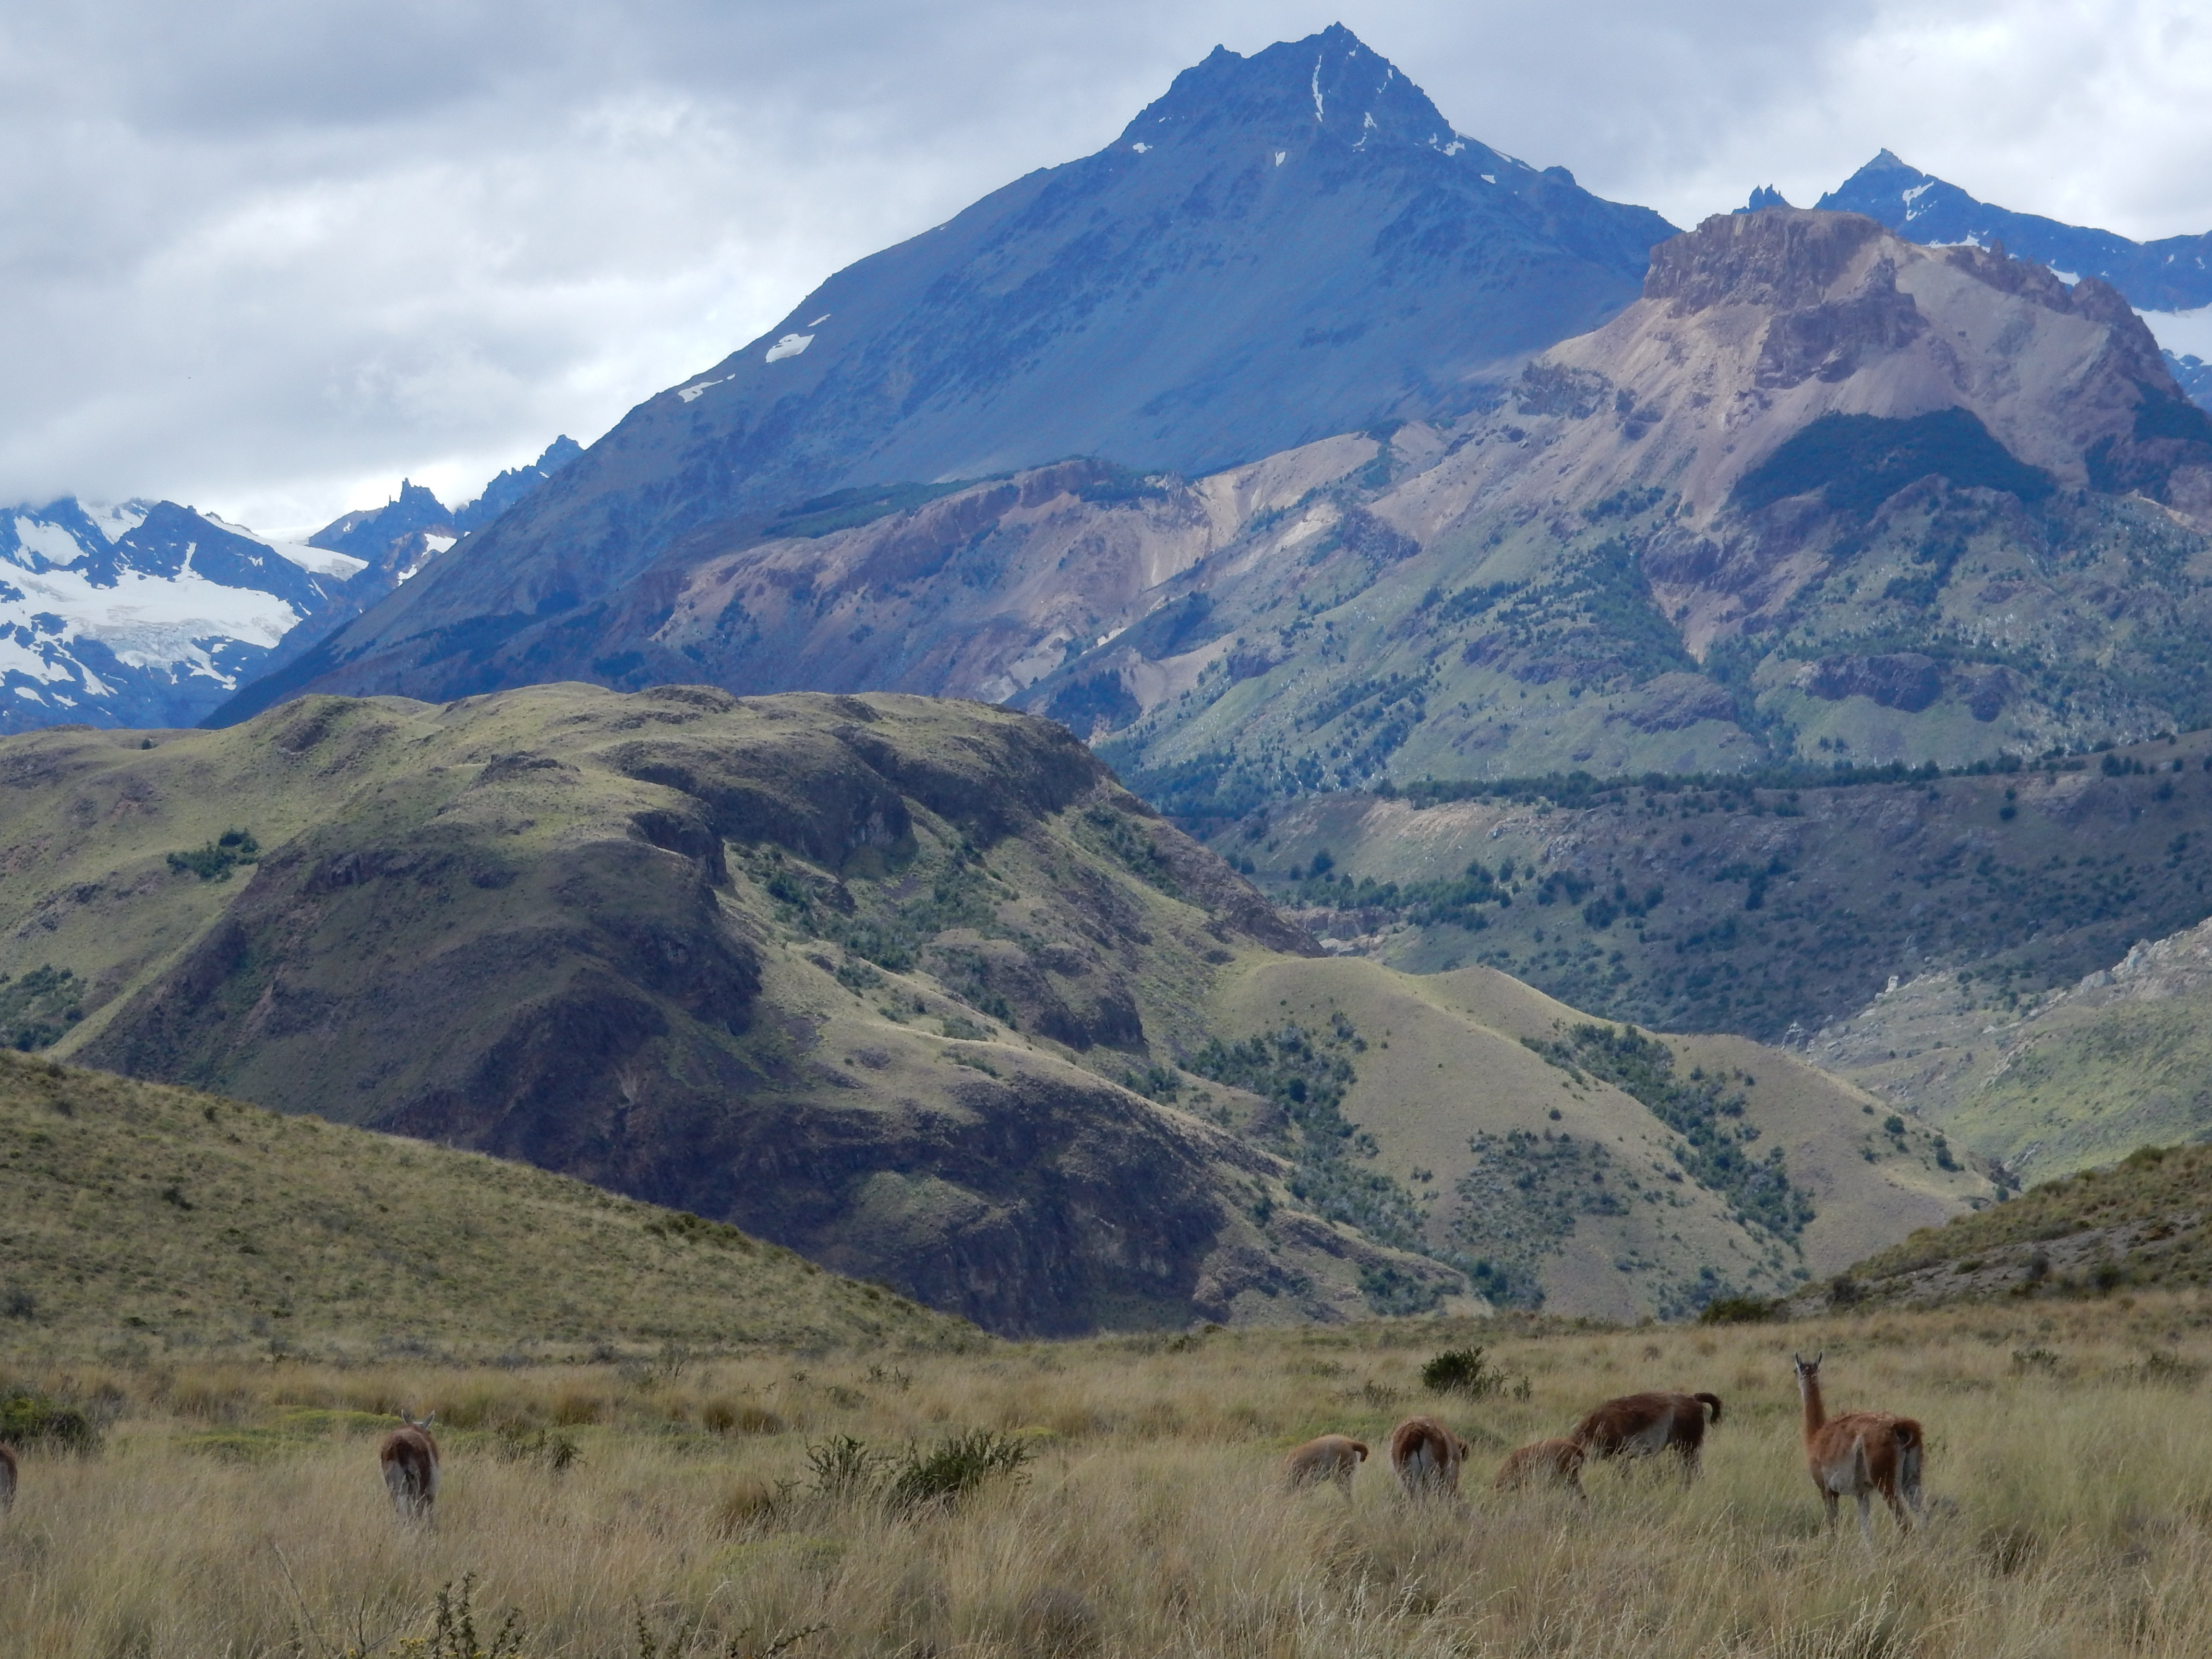 Chile Mountain and Llamas